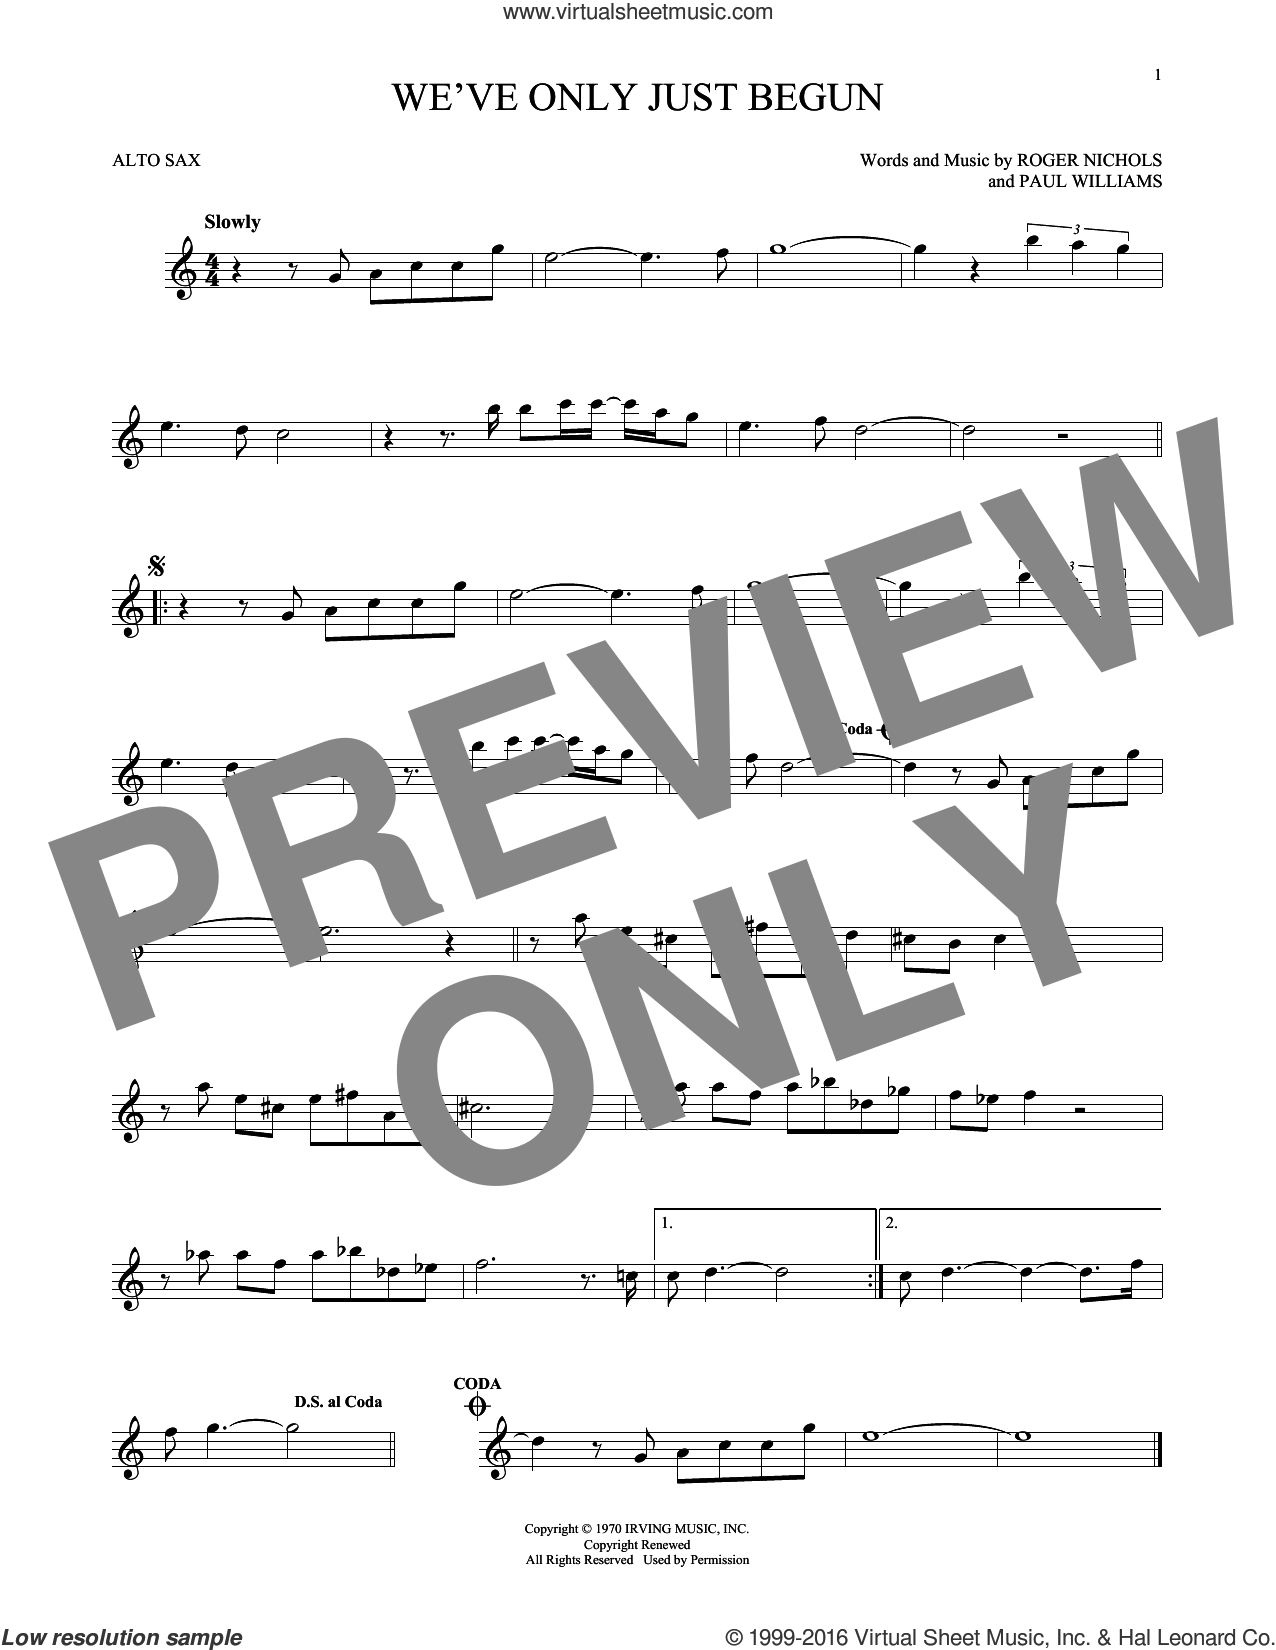 We've Only Just Begun sheet music for alto saxophone solo by Paul Williams, Carpenters and Roger Nichols, intermediate skill level